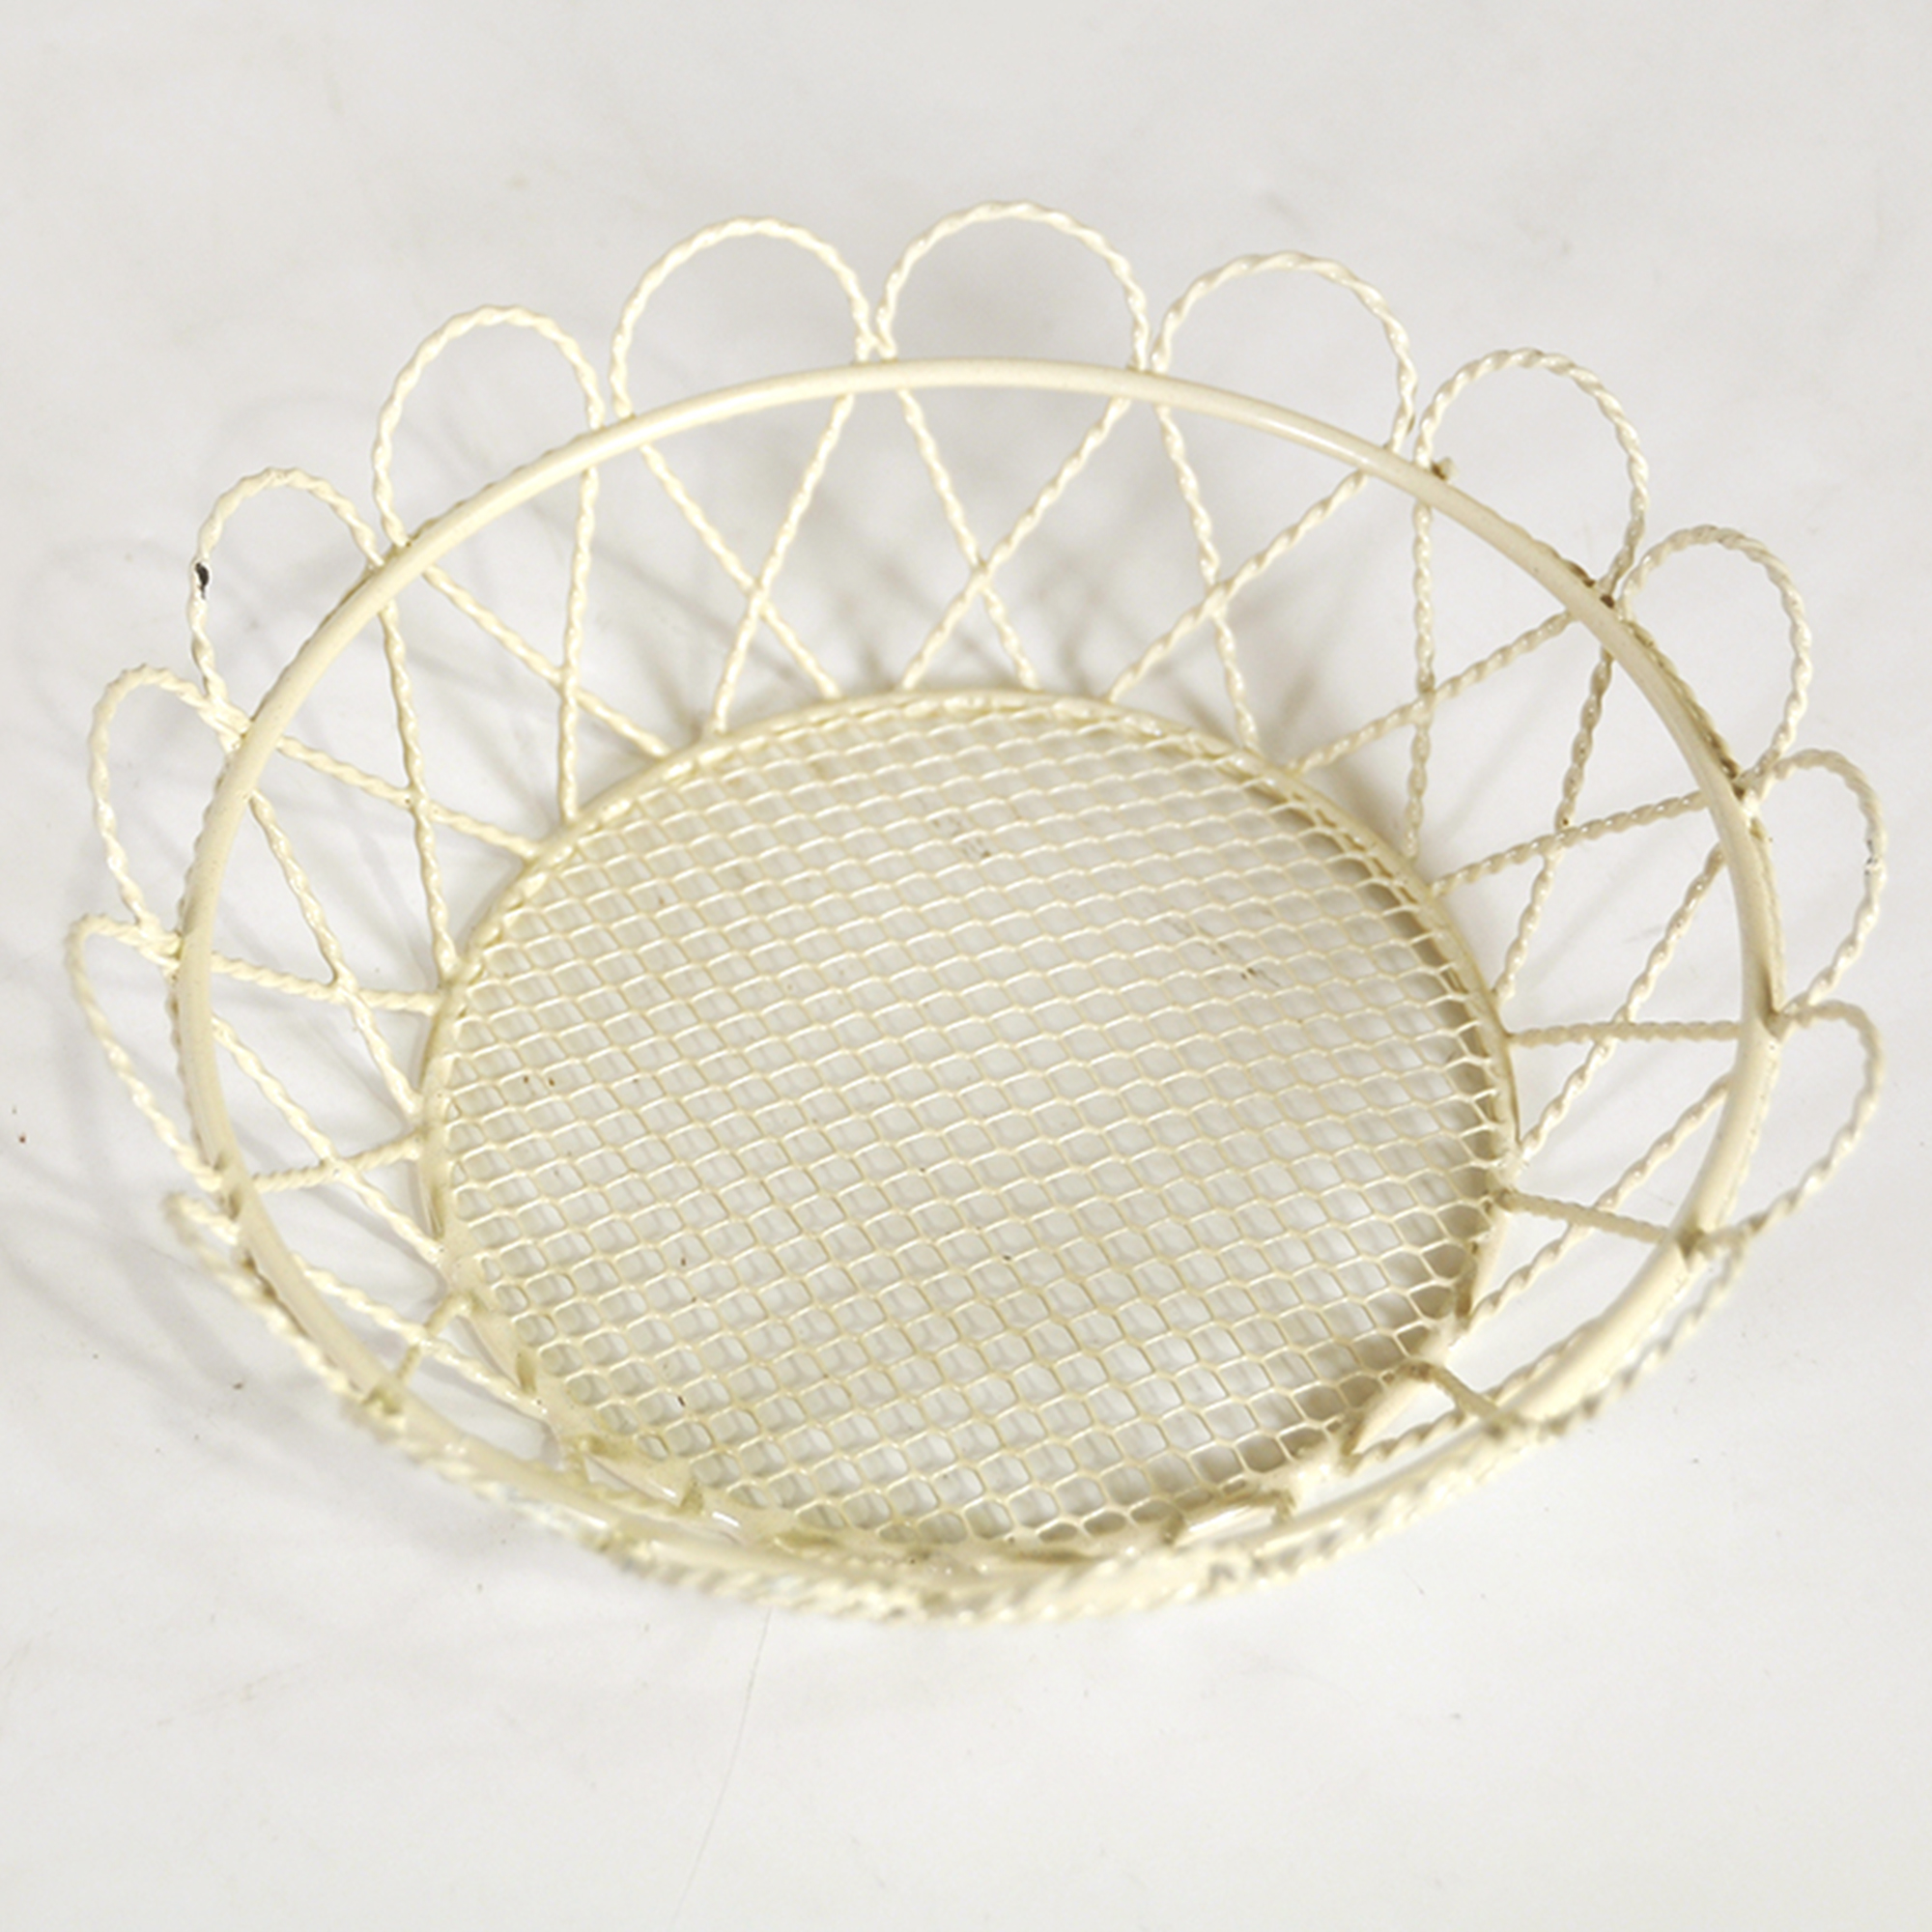 Stella Mini Round Tray with Scalloped Edge - Cream 5in